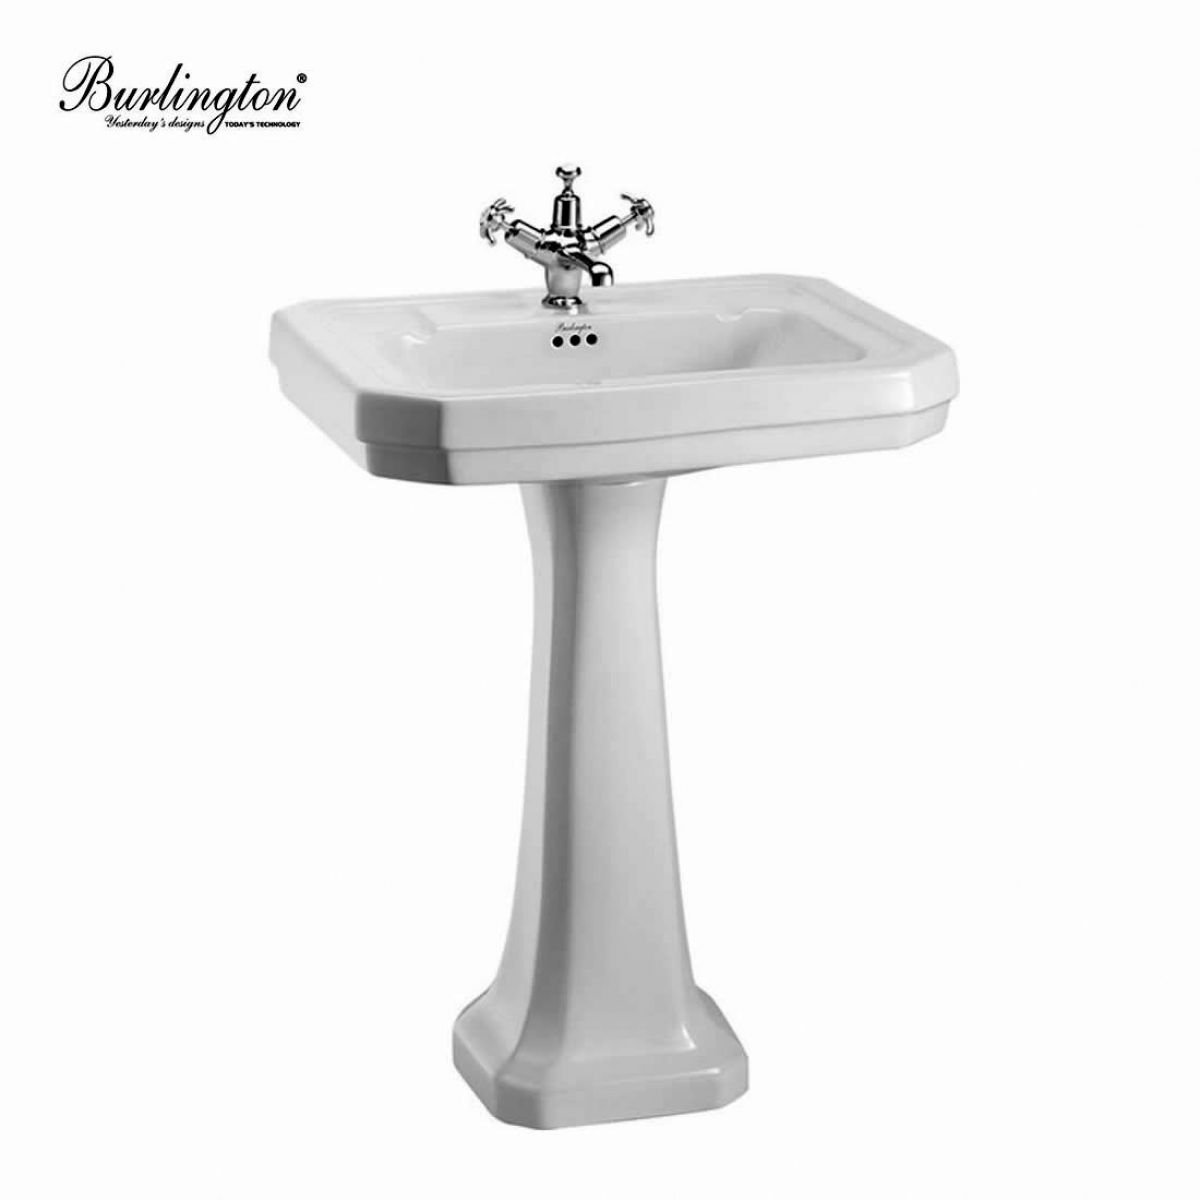 victorian large basin and pedestal home bathrooms basins and sinks ...